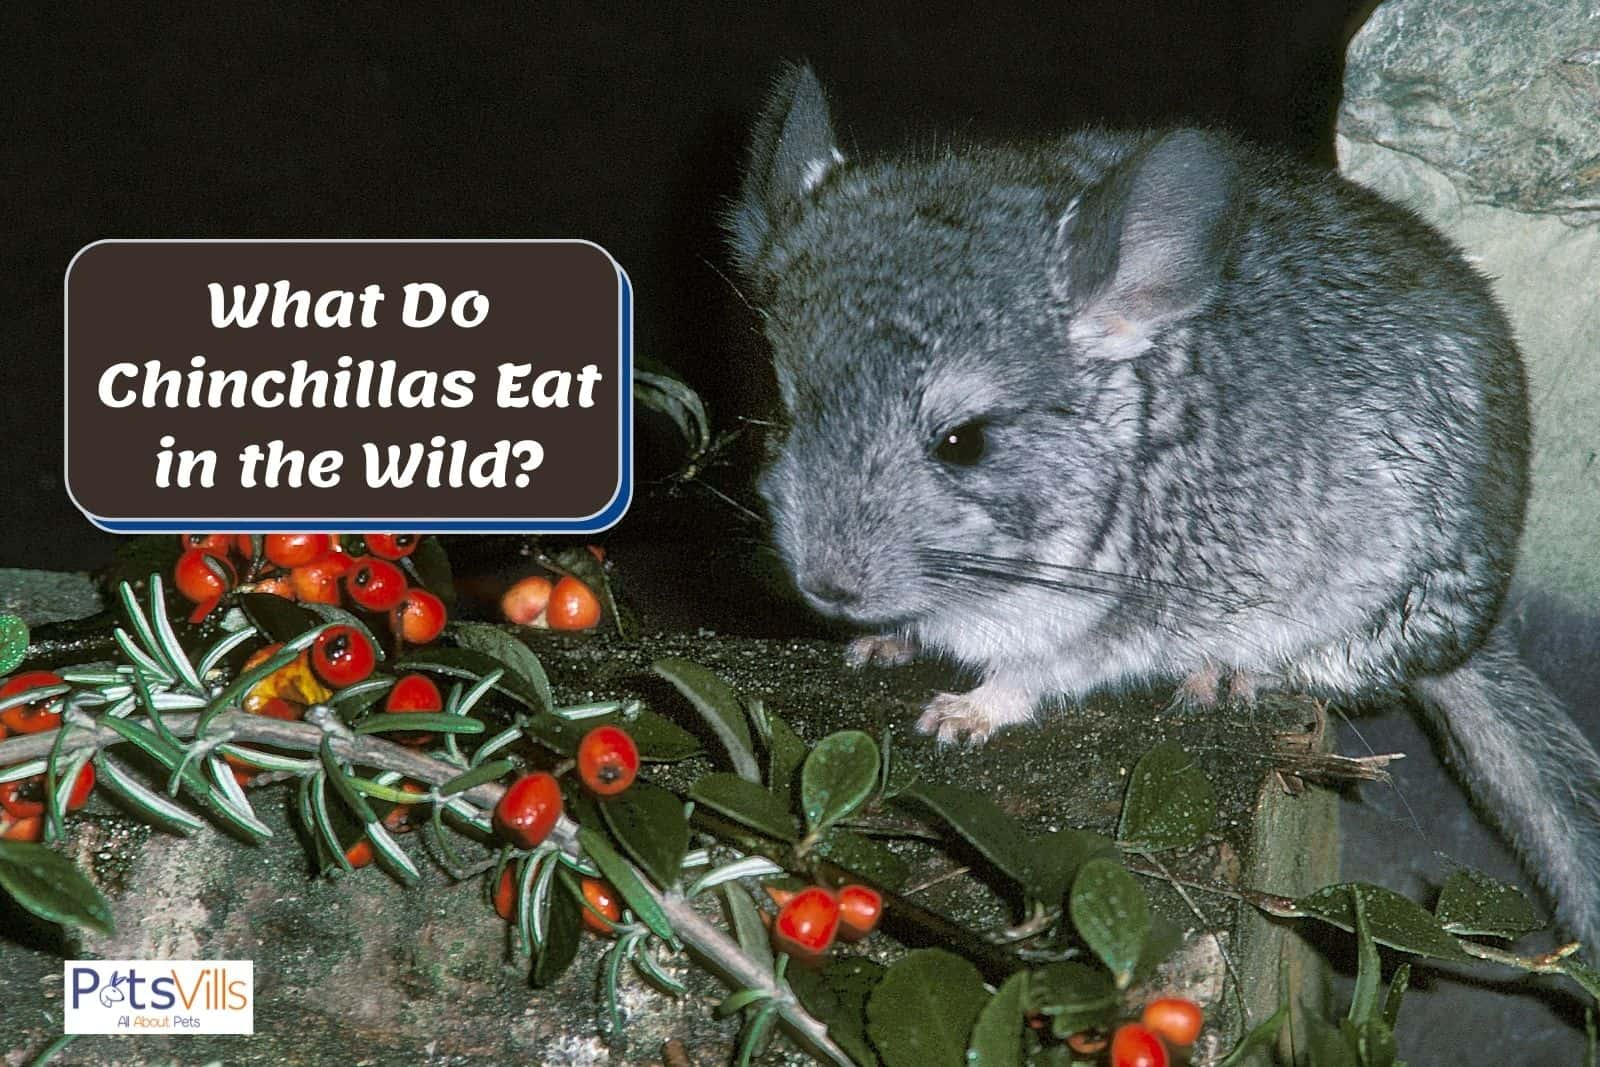 chinchilla beside wild fruits but what do chinchillas eat in the wild?